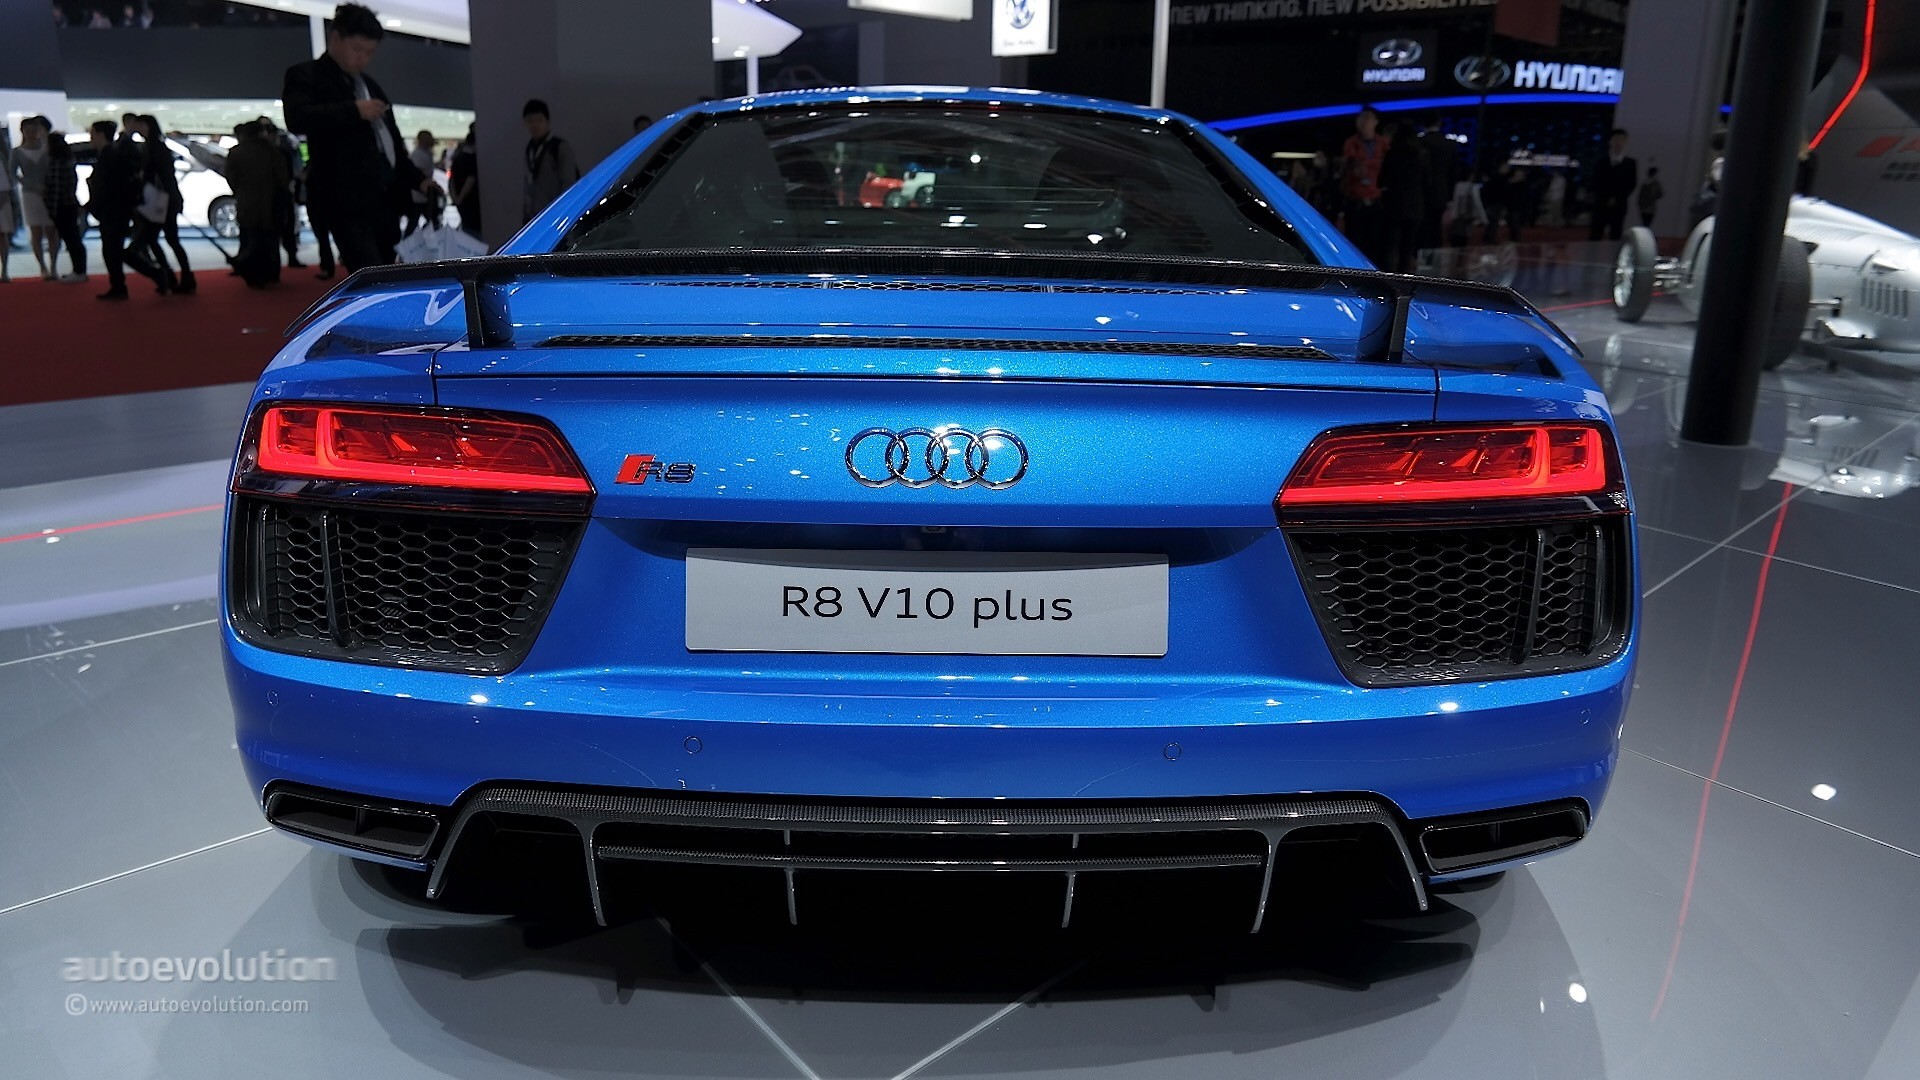 Audi R8 V10 Plus Leads Audi's Power Play at Auto Shanghai 2015 - autoevolution